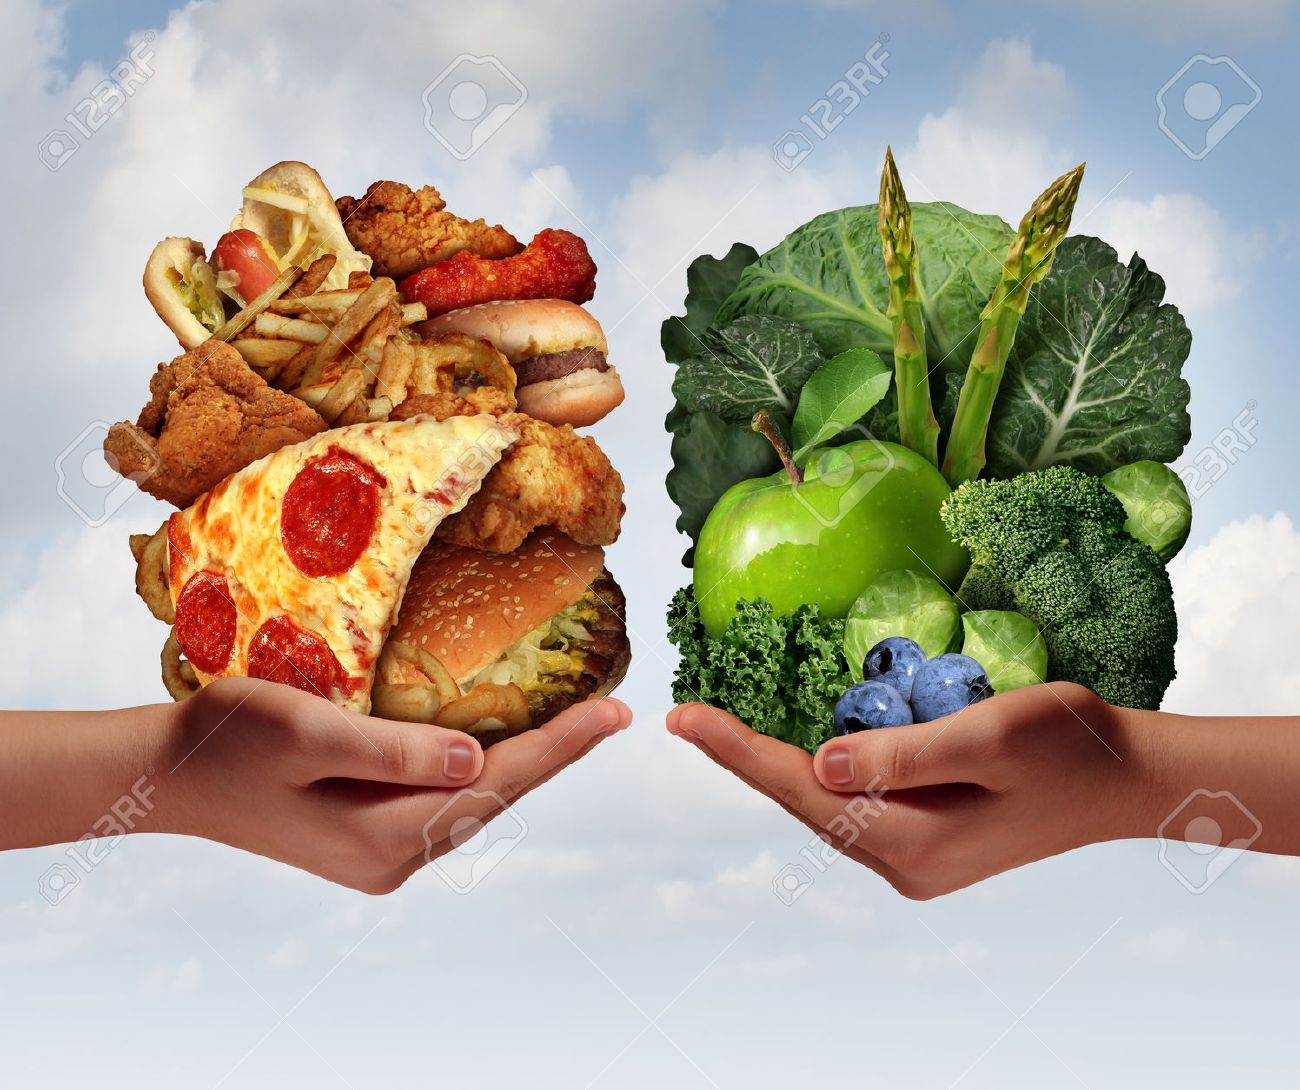 Nutrition Choice And Diet Decision Concept And Eating Choices Dilemma  Between Healthy Good Fresh Fruit And